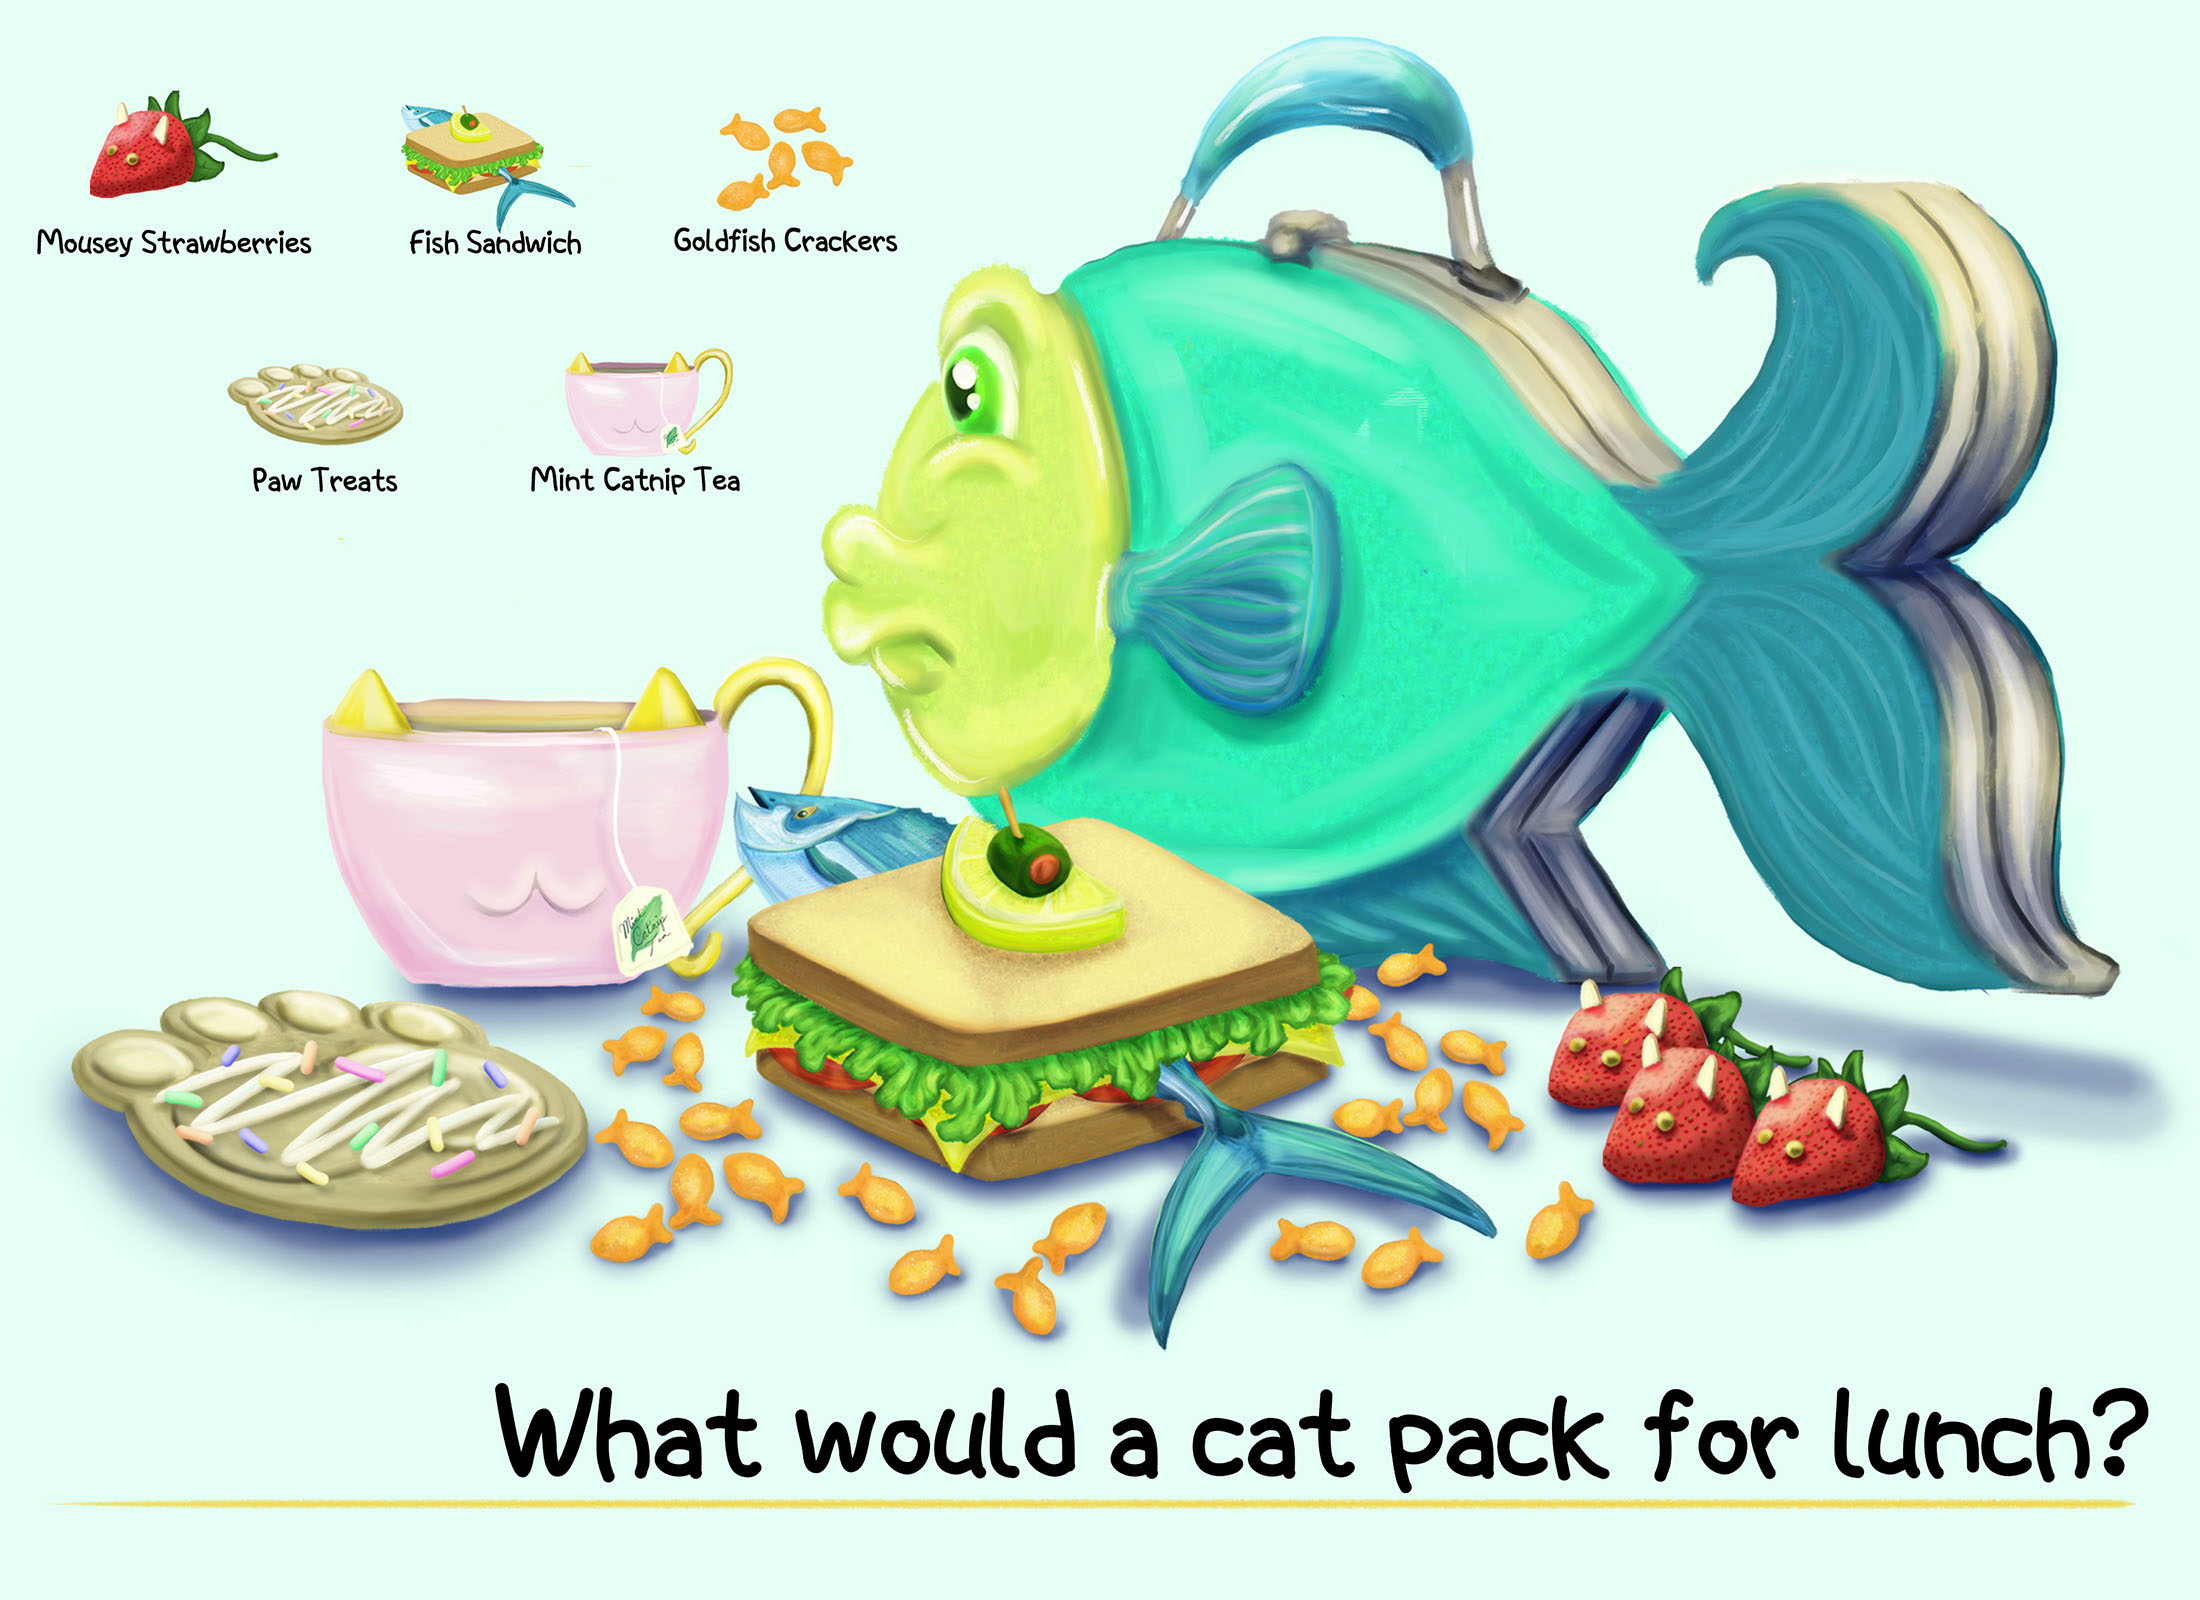 What Would a Cat Pack for Lunch?